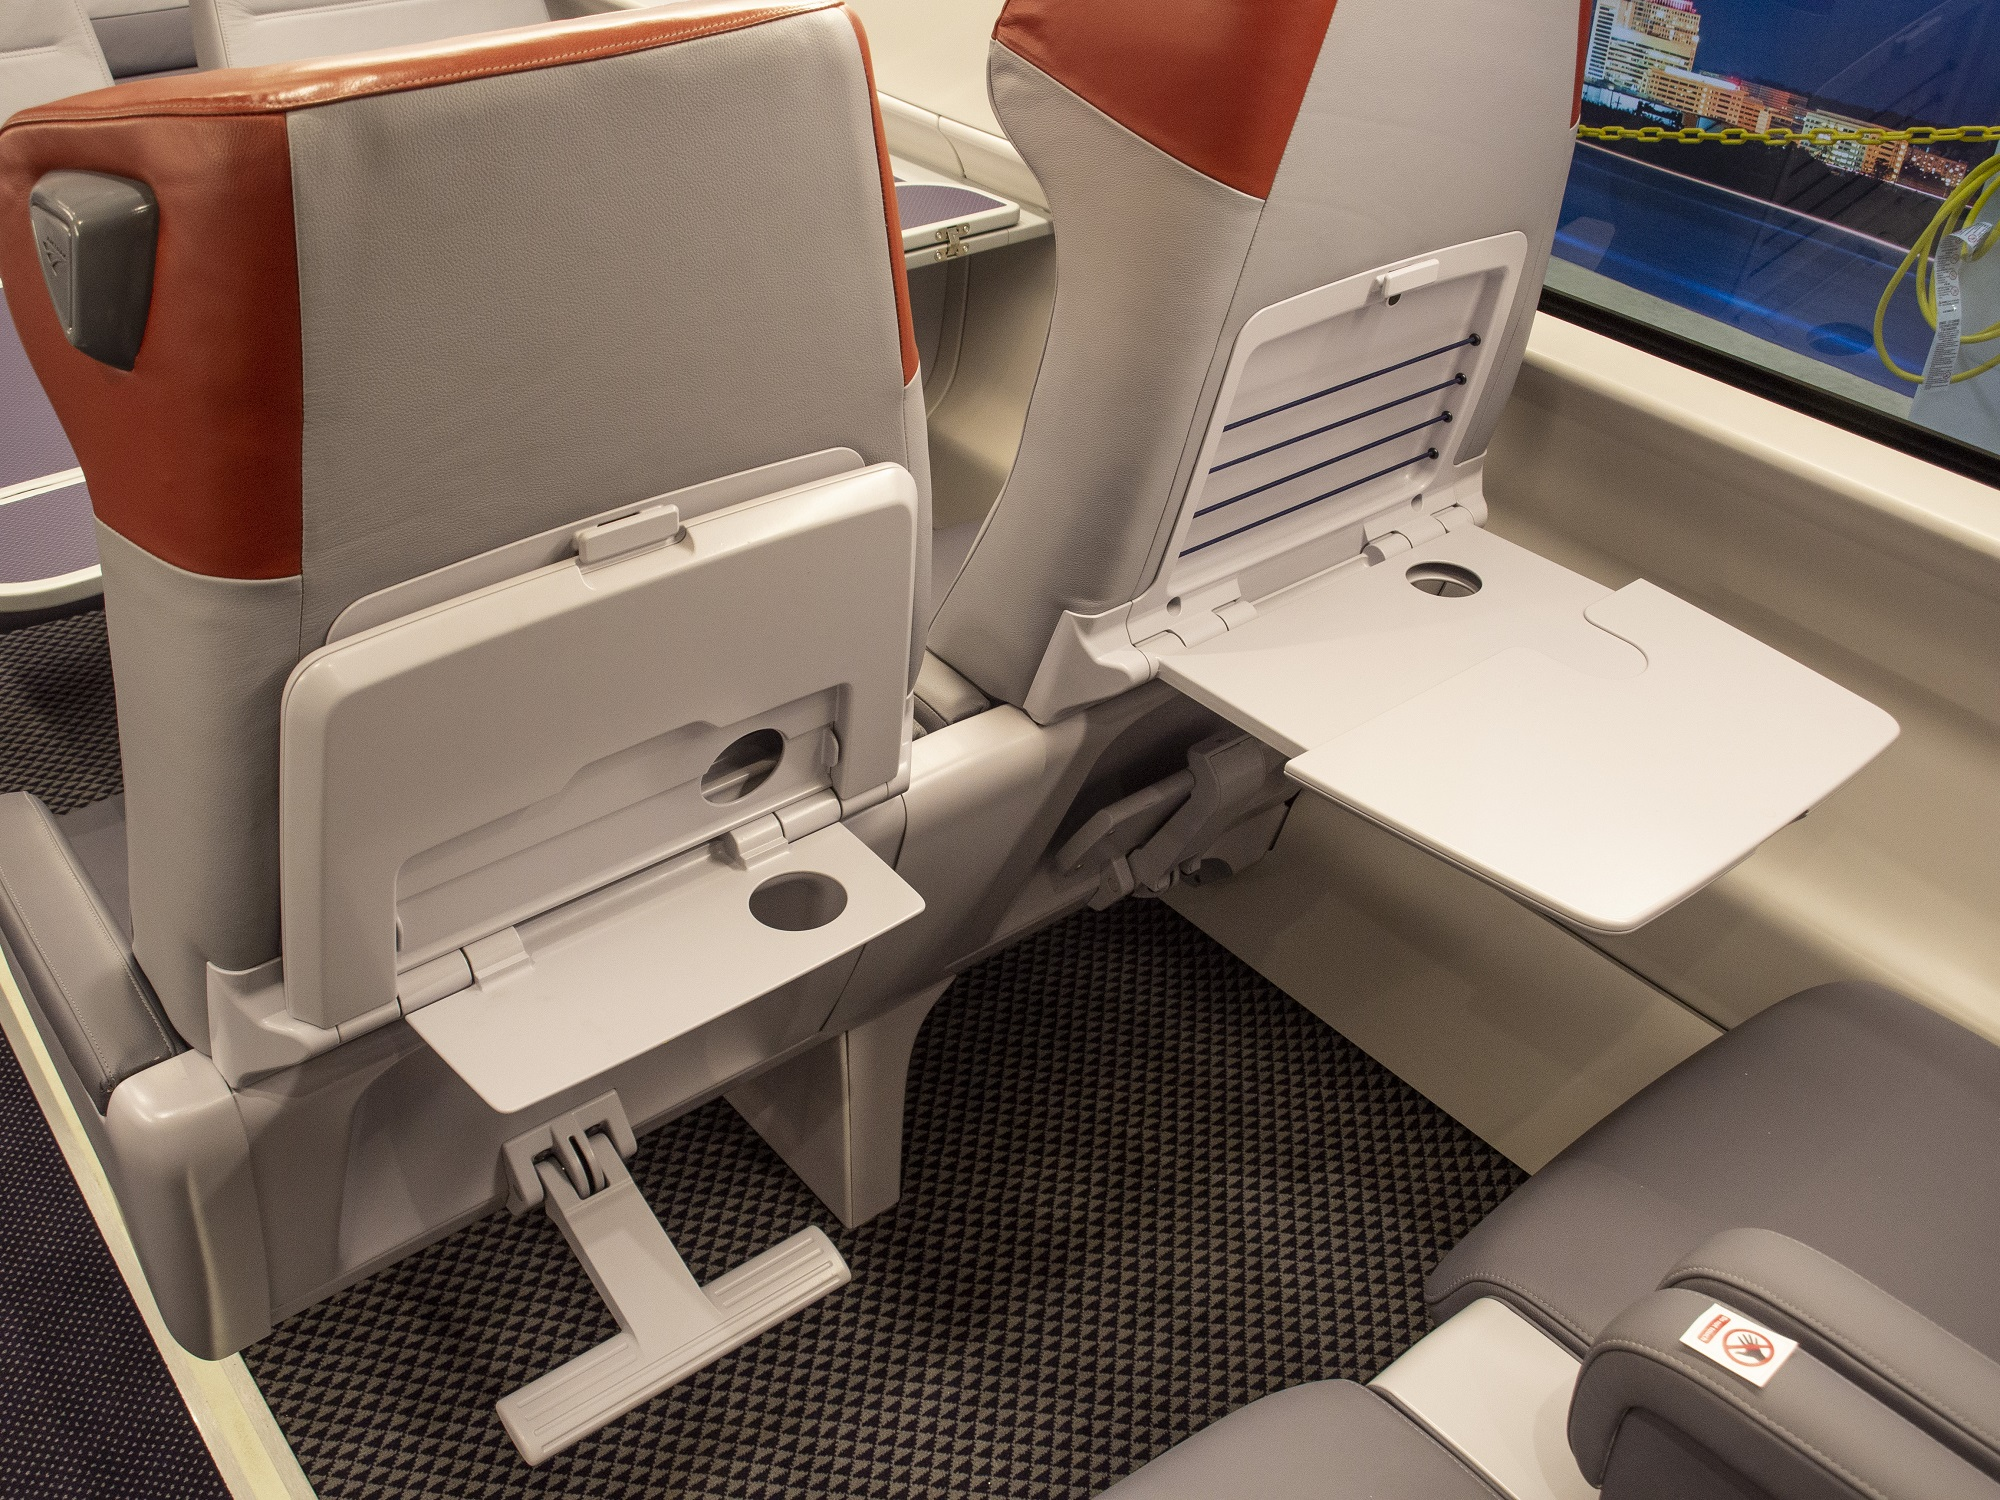 Acela's seat backs are equipped with dual tray tables providing customers with a large and small table option.